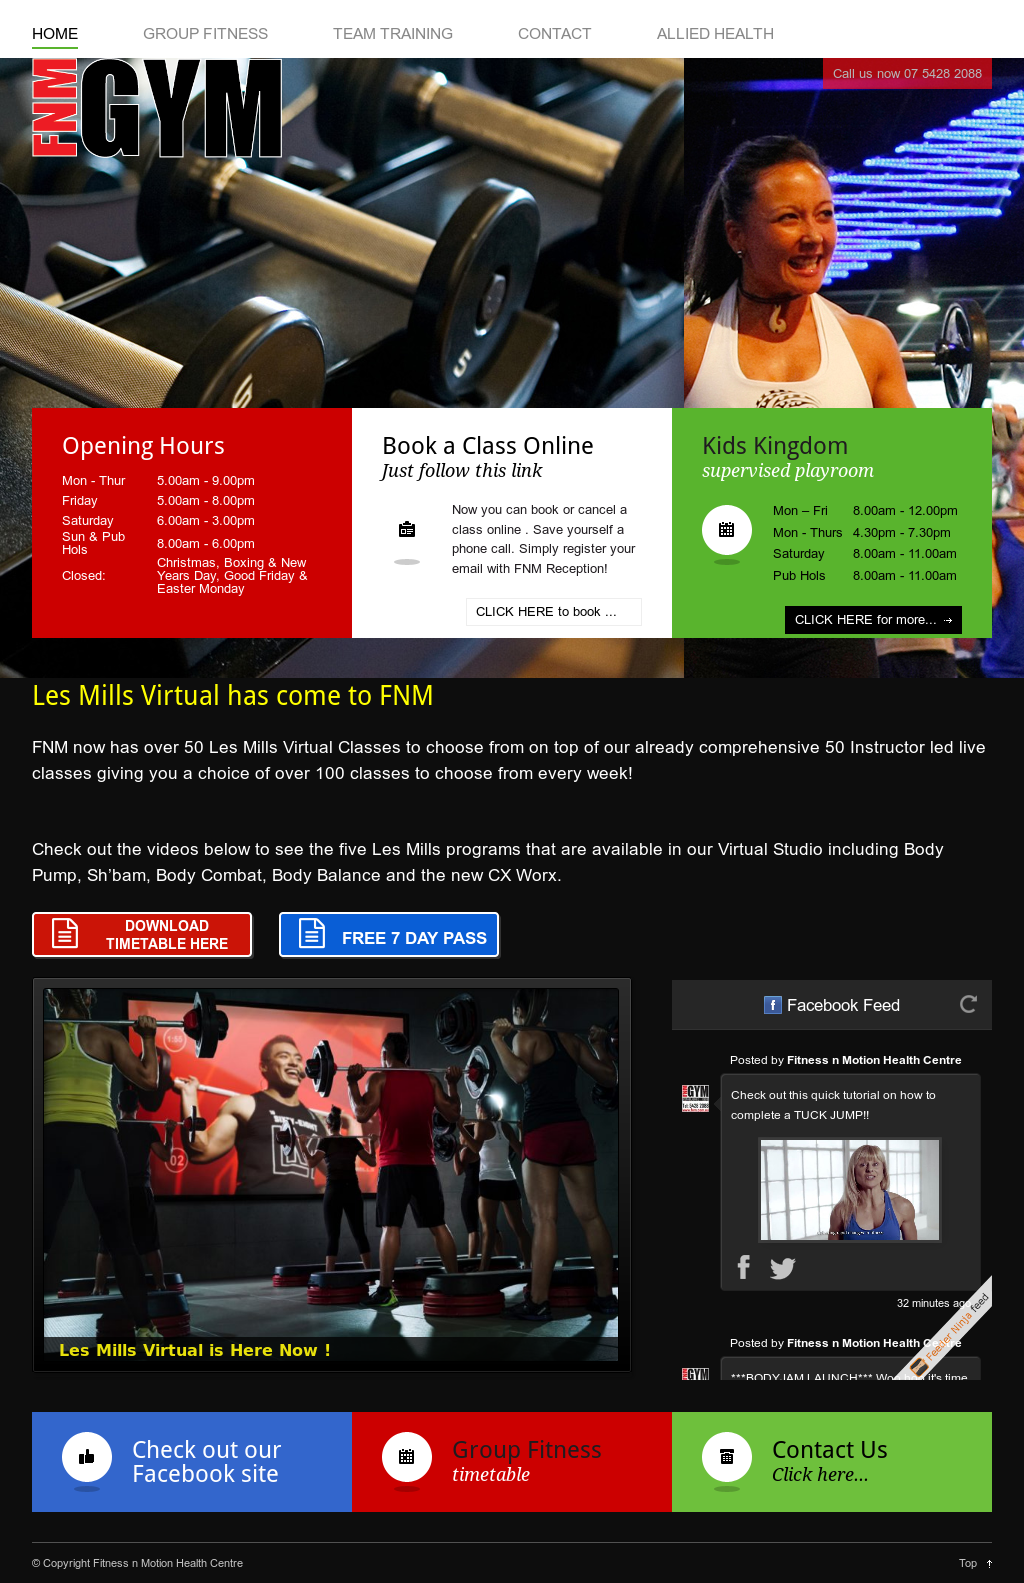 Fitness N Motion Health Centre Competitors, Revenue and